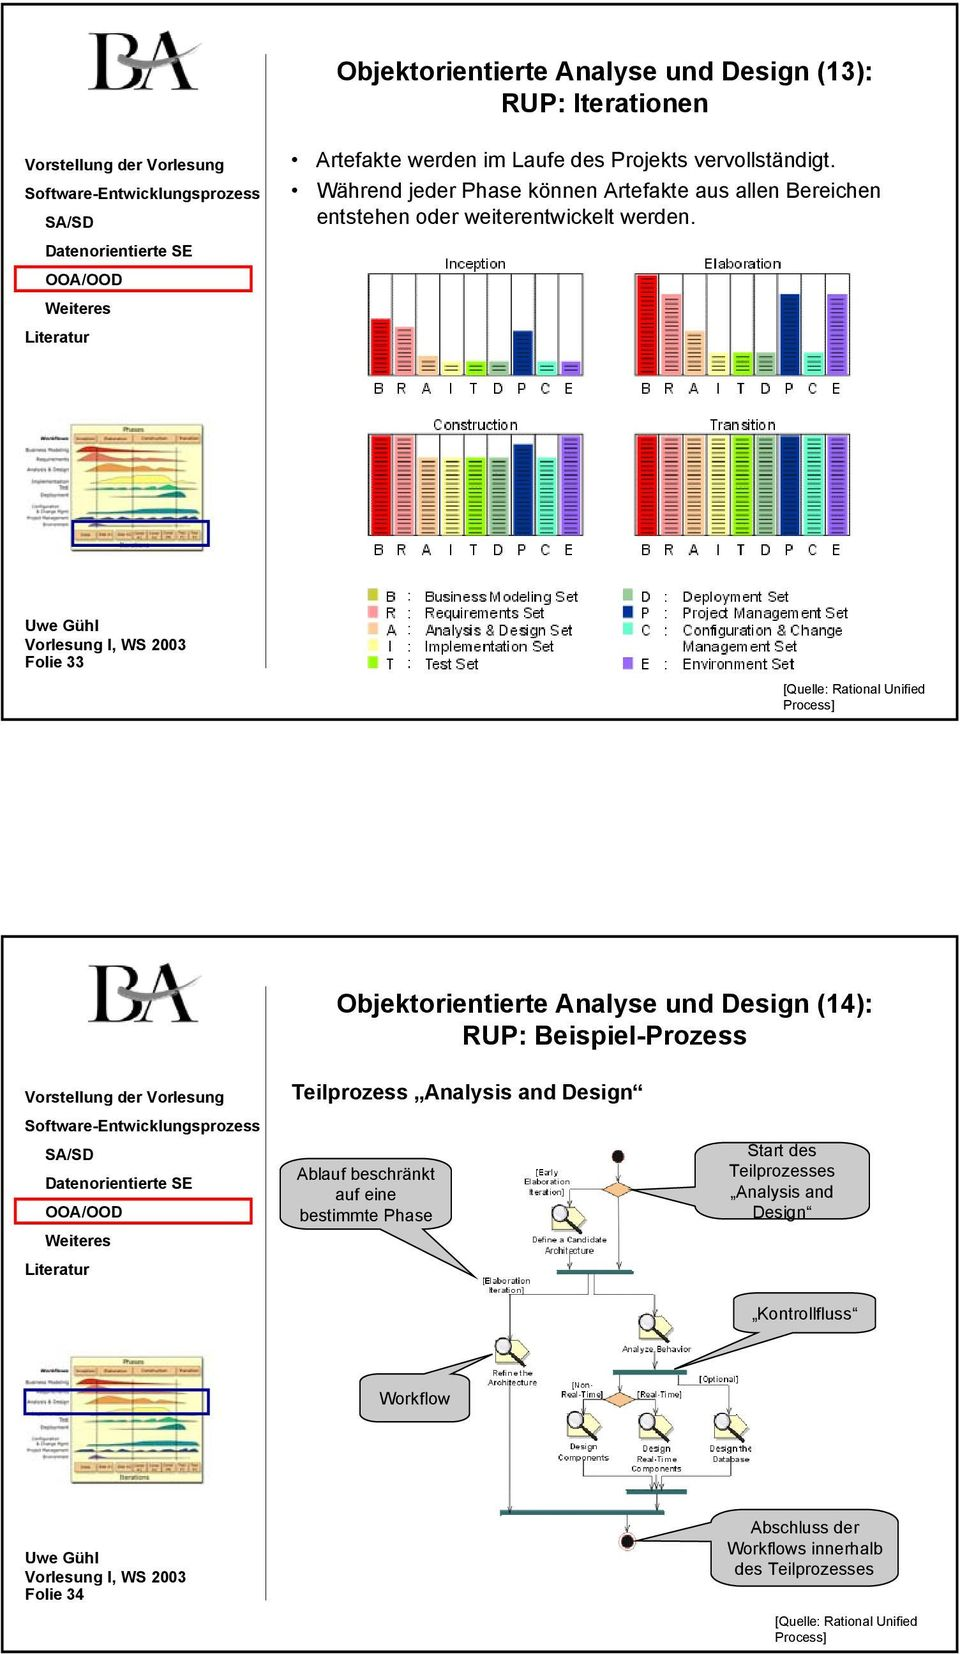 Folie 33 [Quelle: Rational Unified Process] Objektorientierte Analyse und Design (14): RUP: Beispiel-Prozess Teilprozess Analysis and